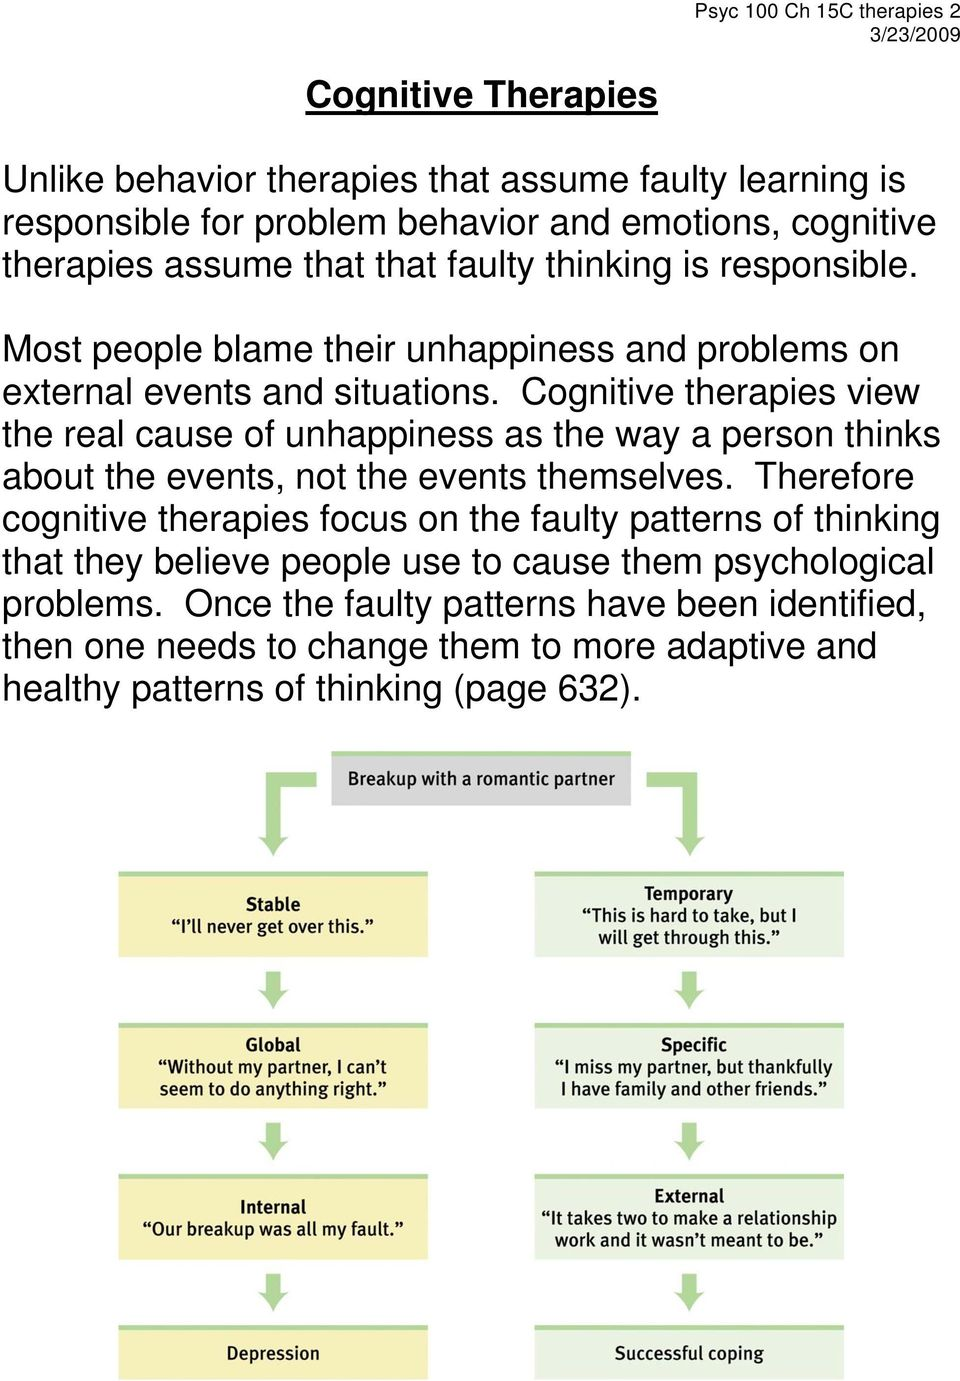 Cognitive therapies view the real cause of unhappiness as the way a person thinks about the events, not the events themselves.